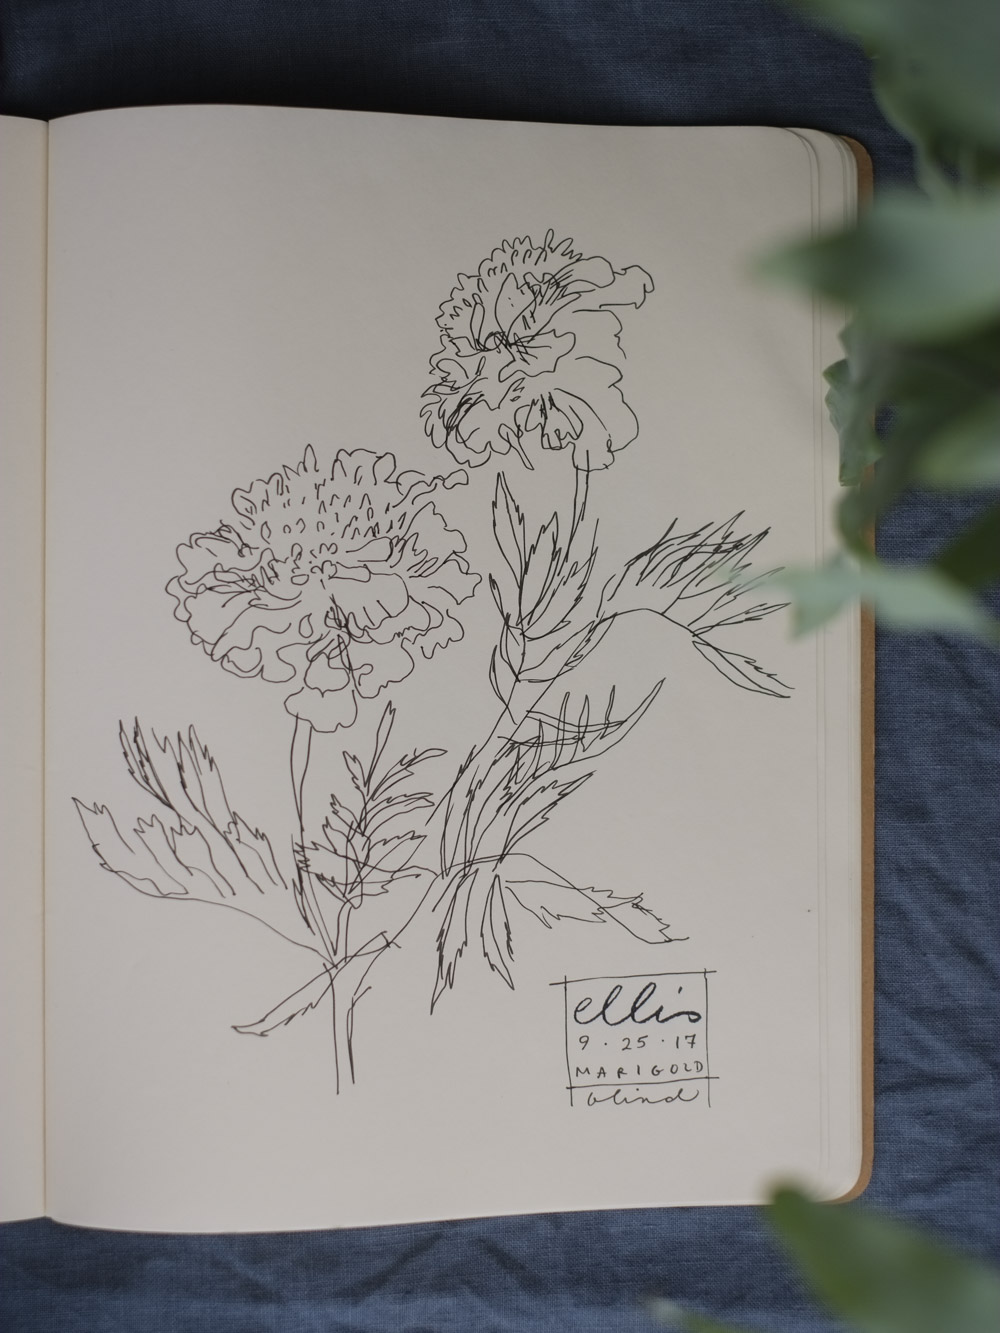 Erin_Ellis_daily_botanical_blind_drawings_sept_2017.jpg-29.jpg